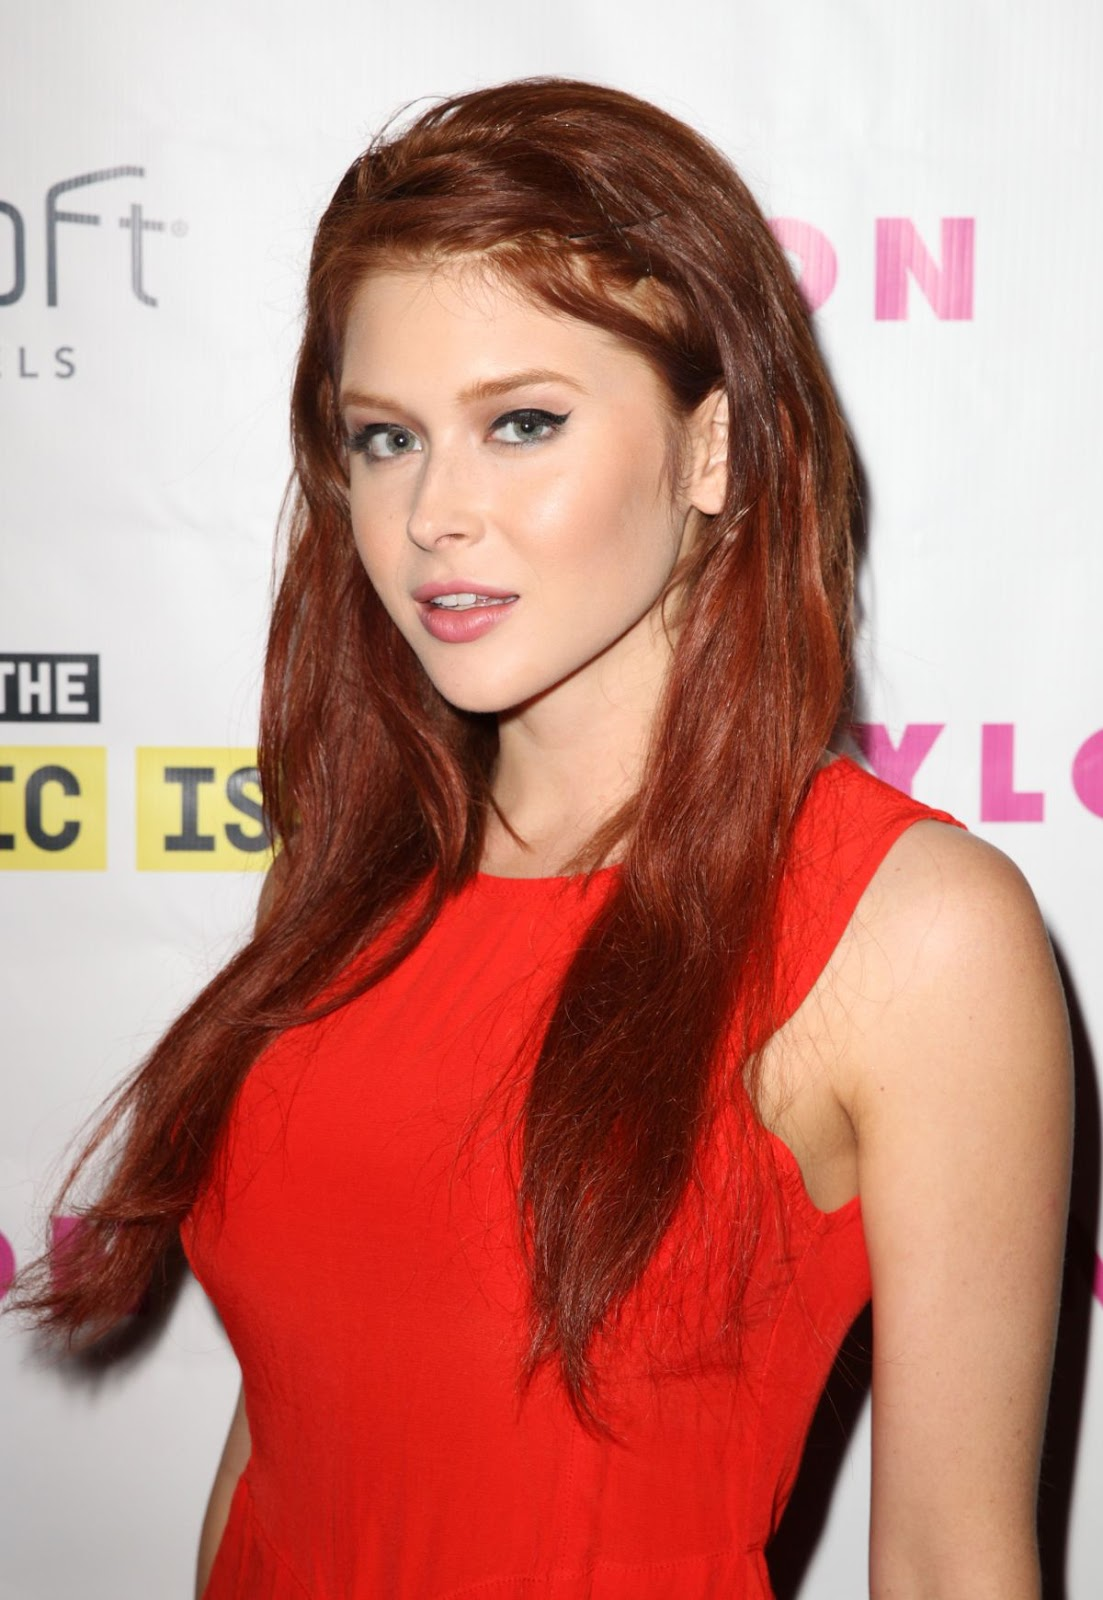 HQ Photos of Renee Olstead in red dress At Nylon Magazine Music Issue Party In Los Angeles